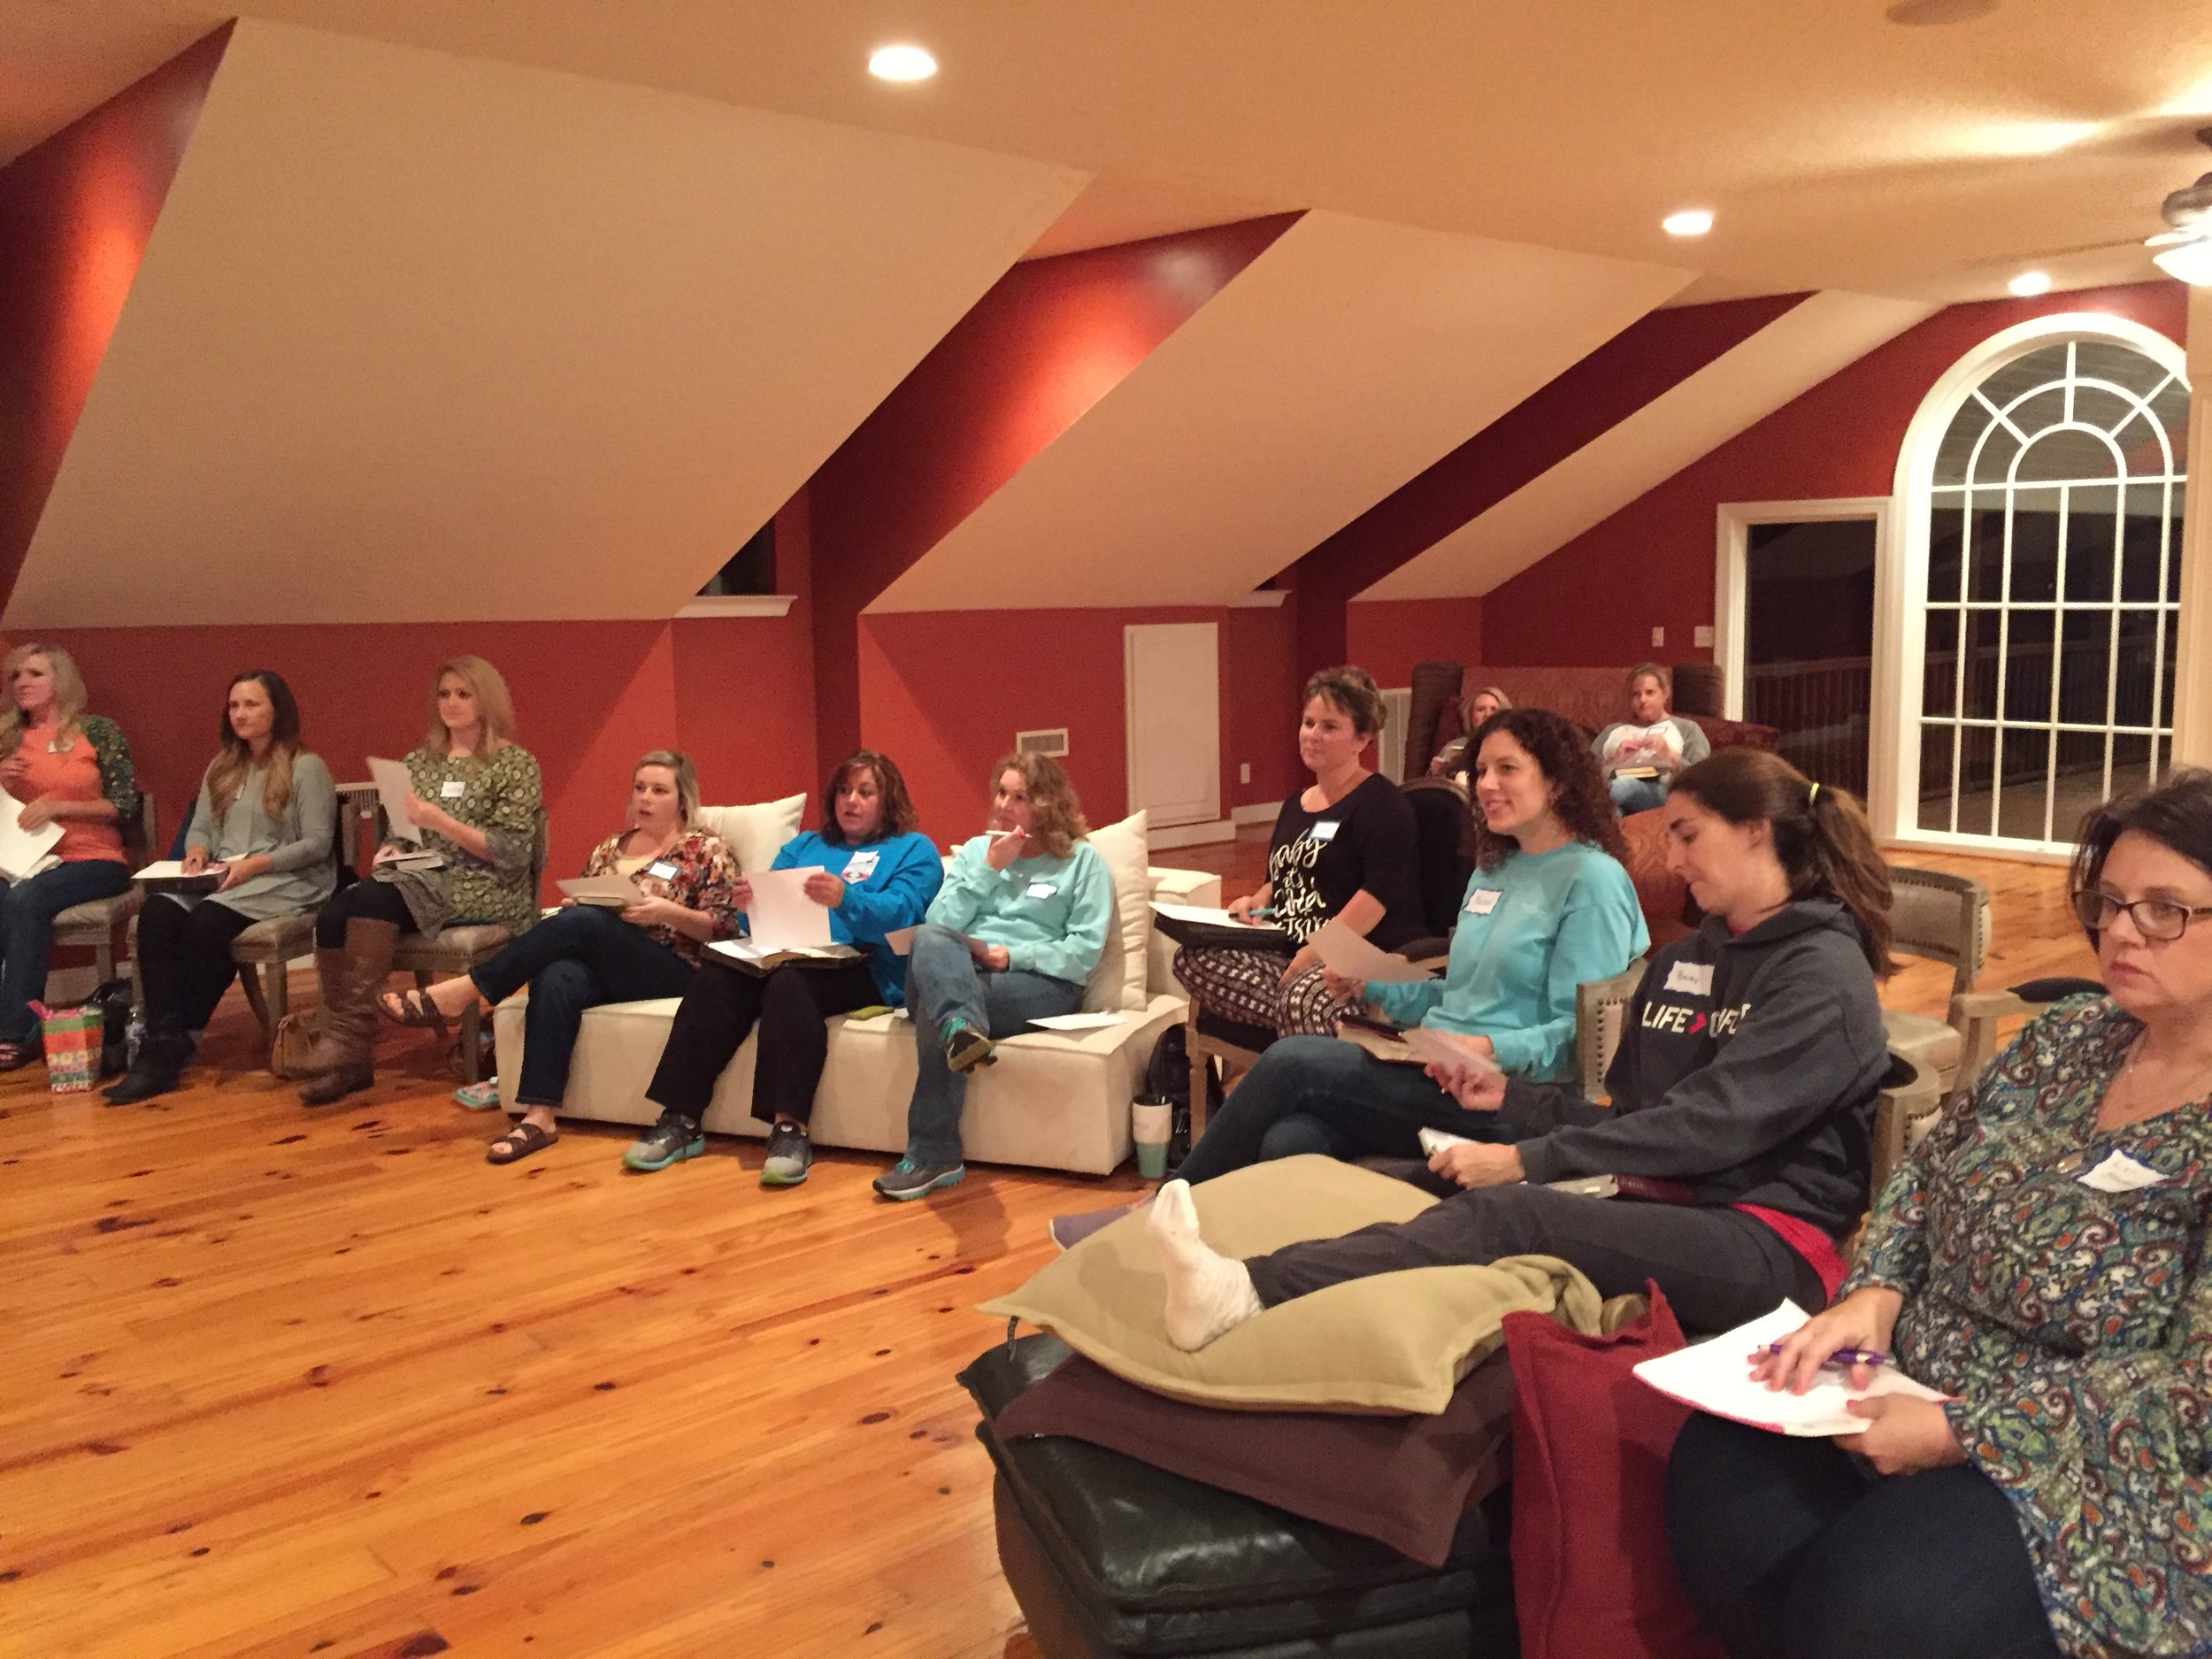 Women's Retreat - Ever need to just get away and